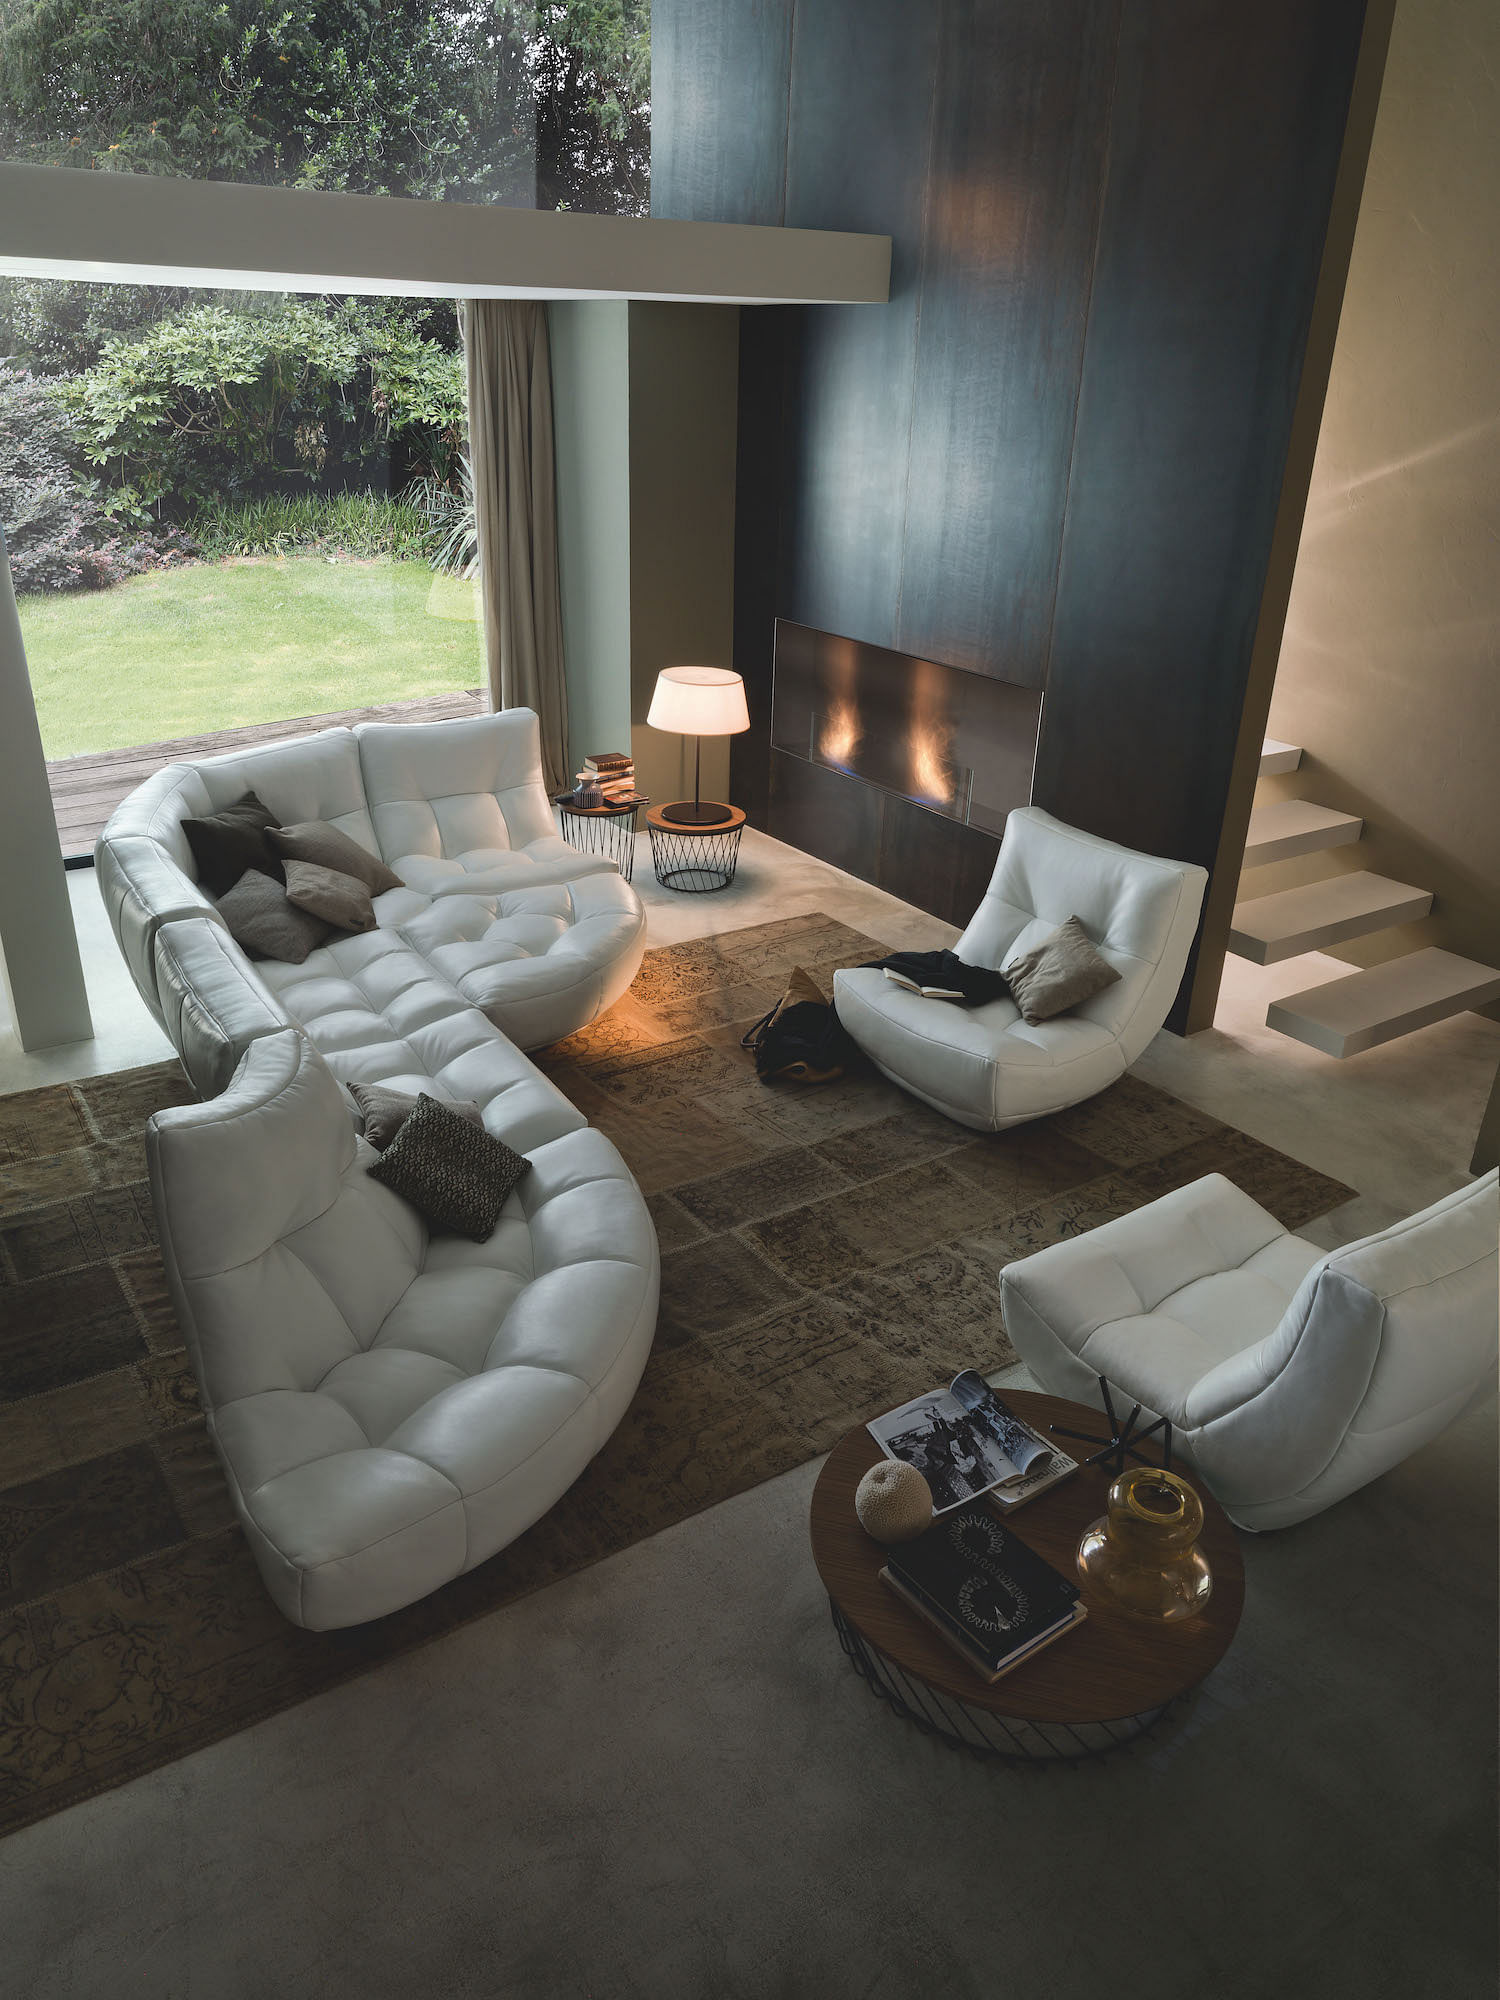 4 New Luxury Furniture Shops In Singapore To Visit